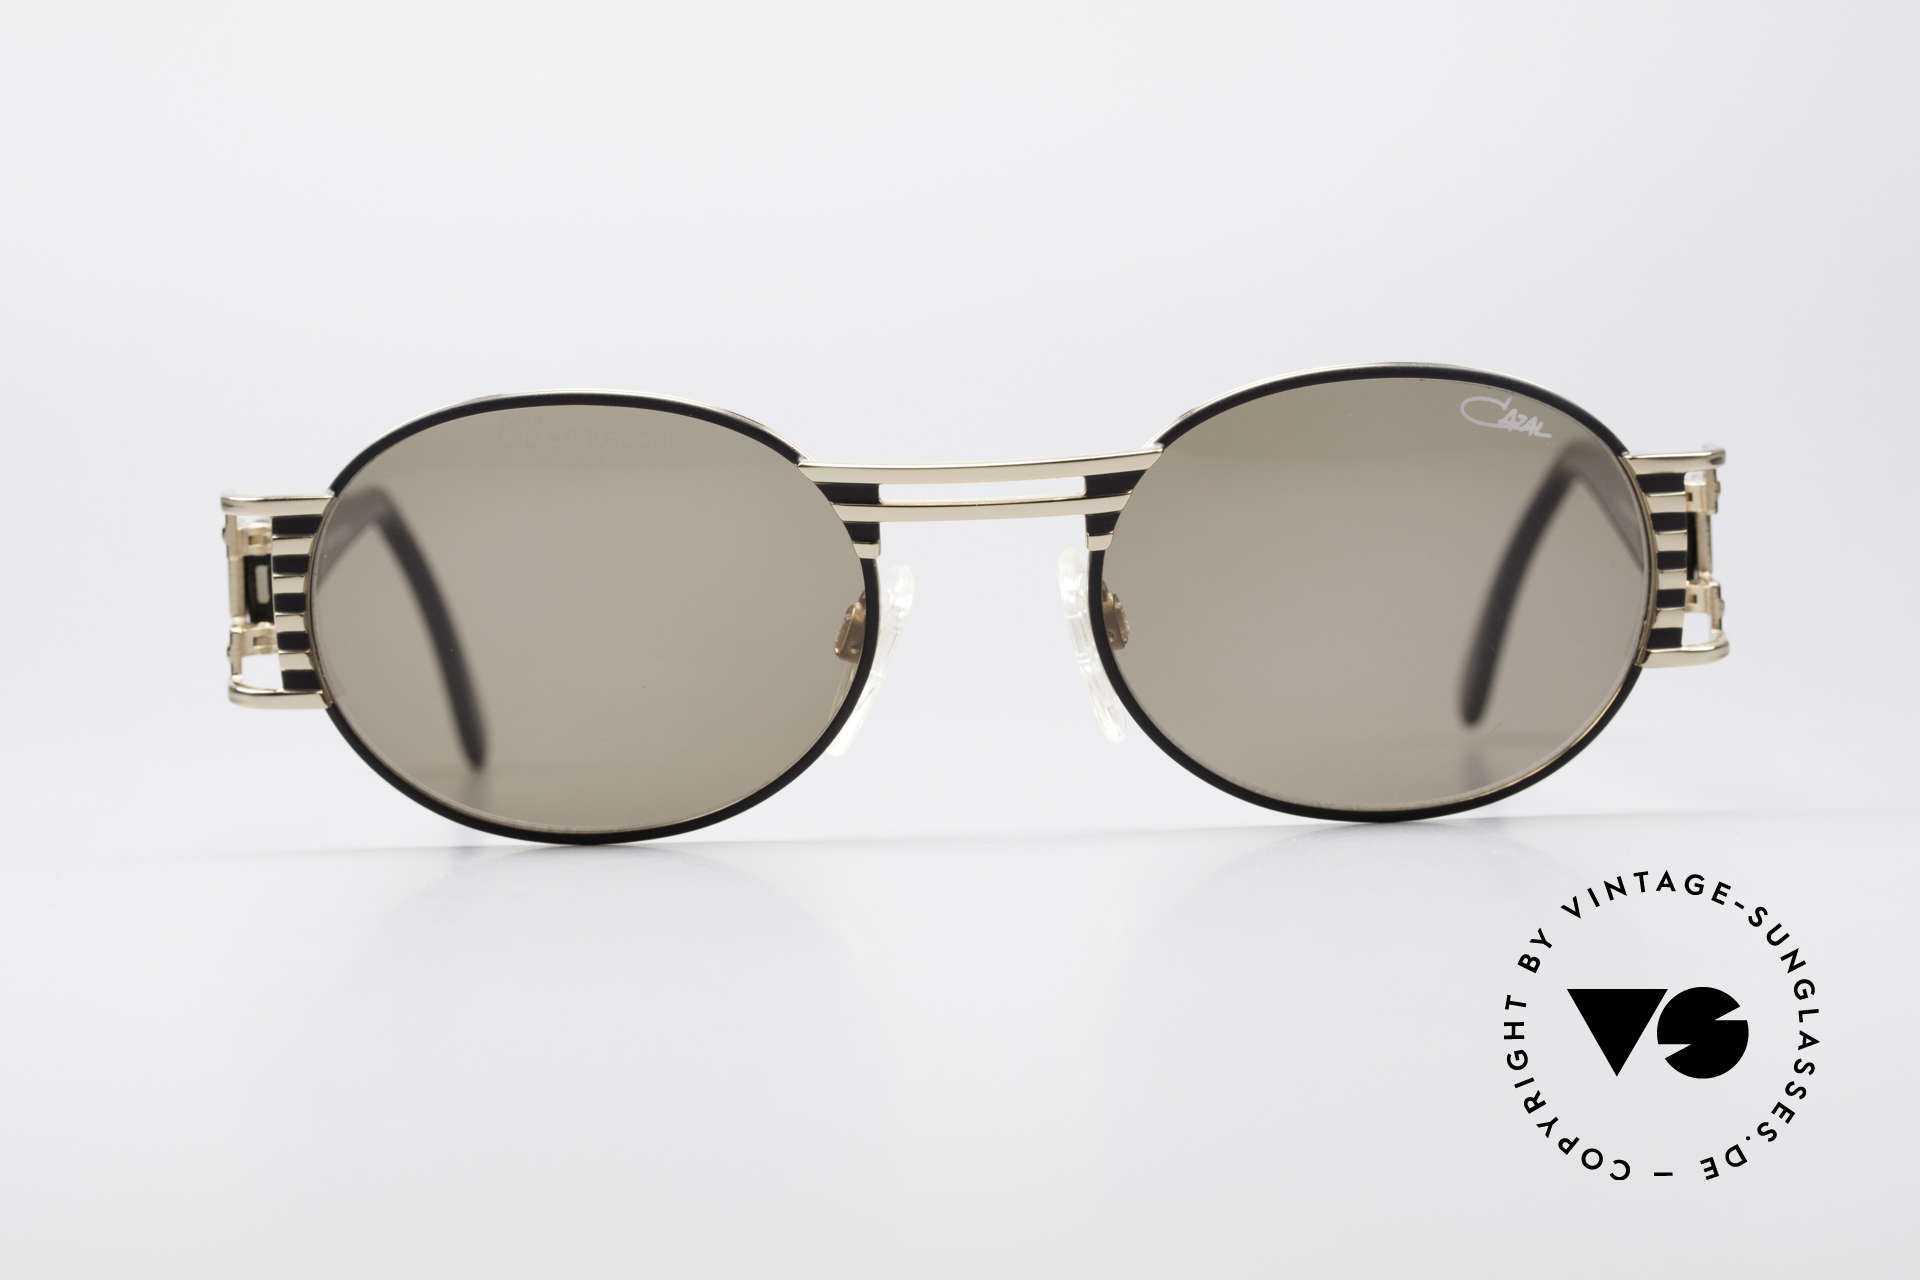 Cazal 976 90's Vintage Sunglasses Oval, oval vintage shades by Cari Zalloni (Mr. CAZAL), Made for Men and Women